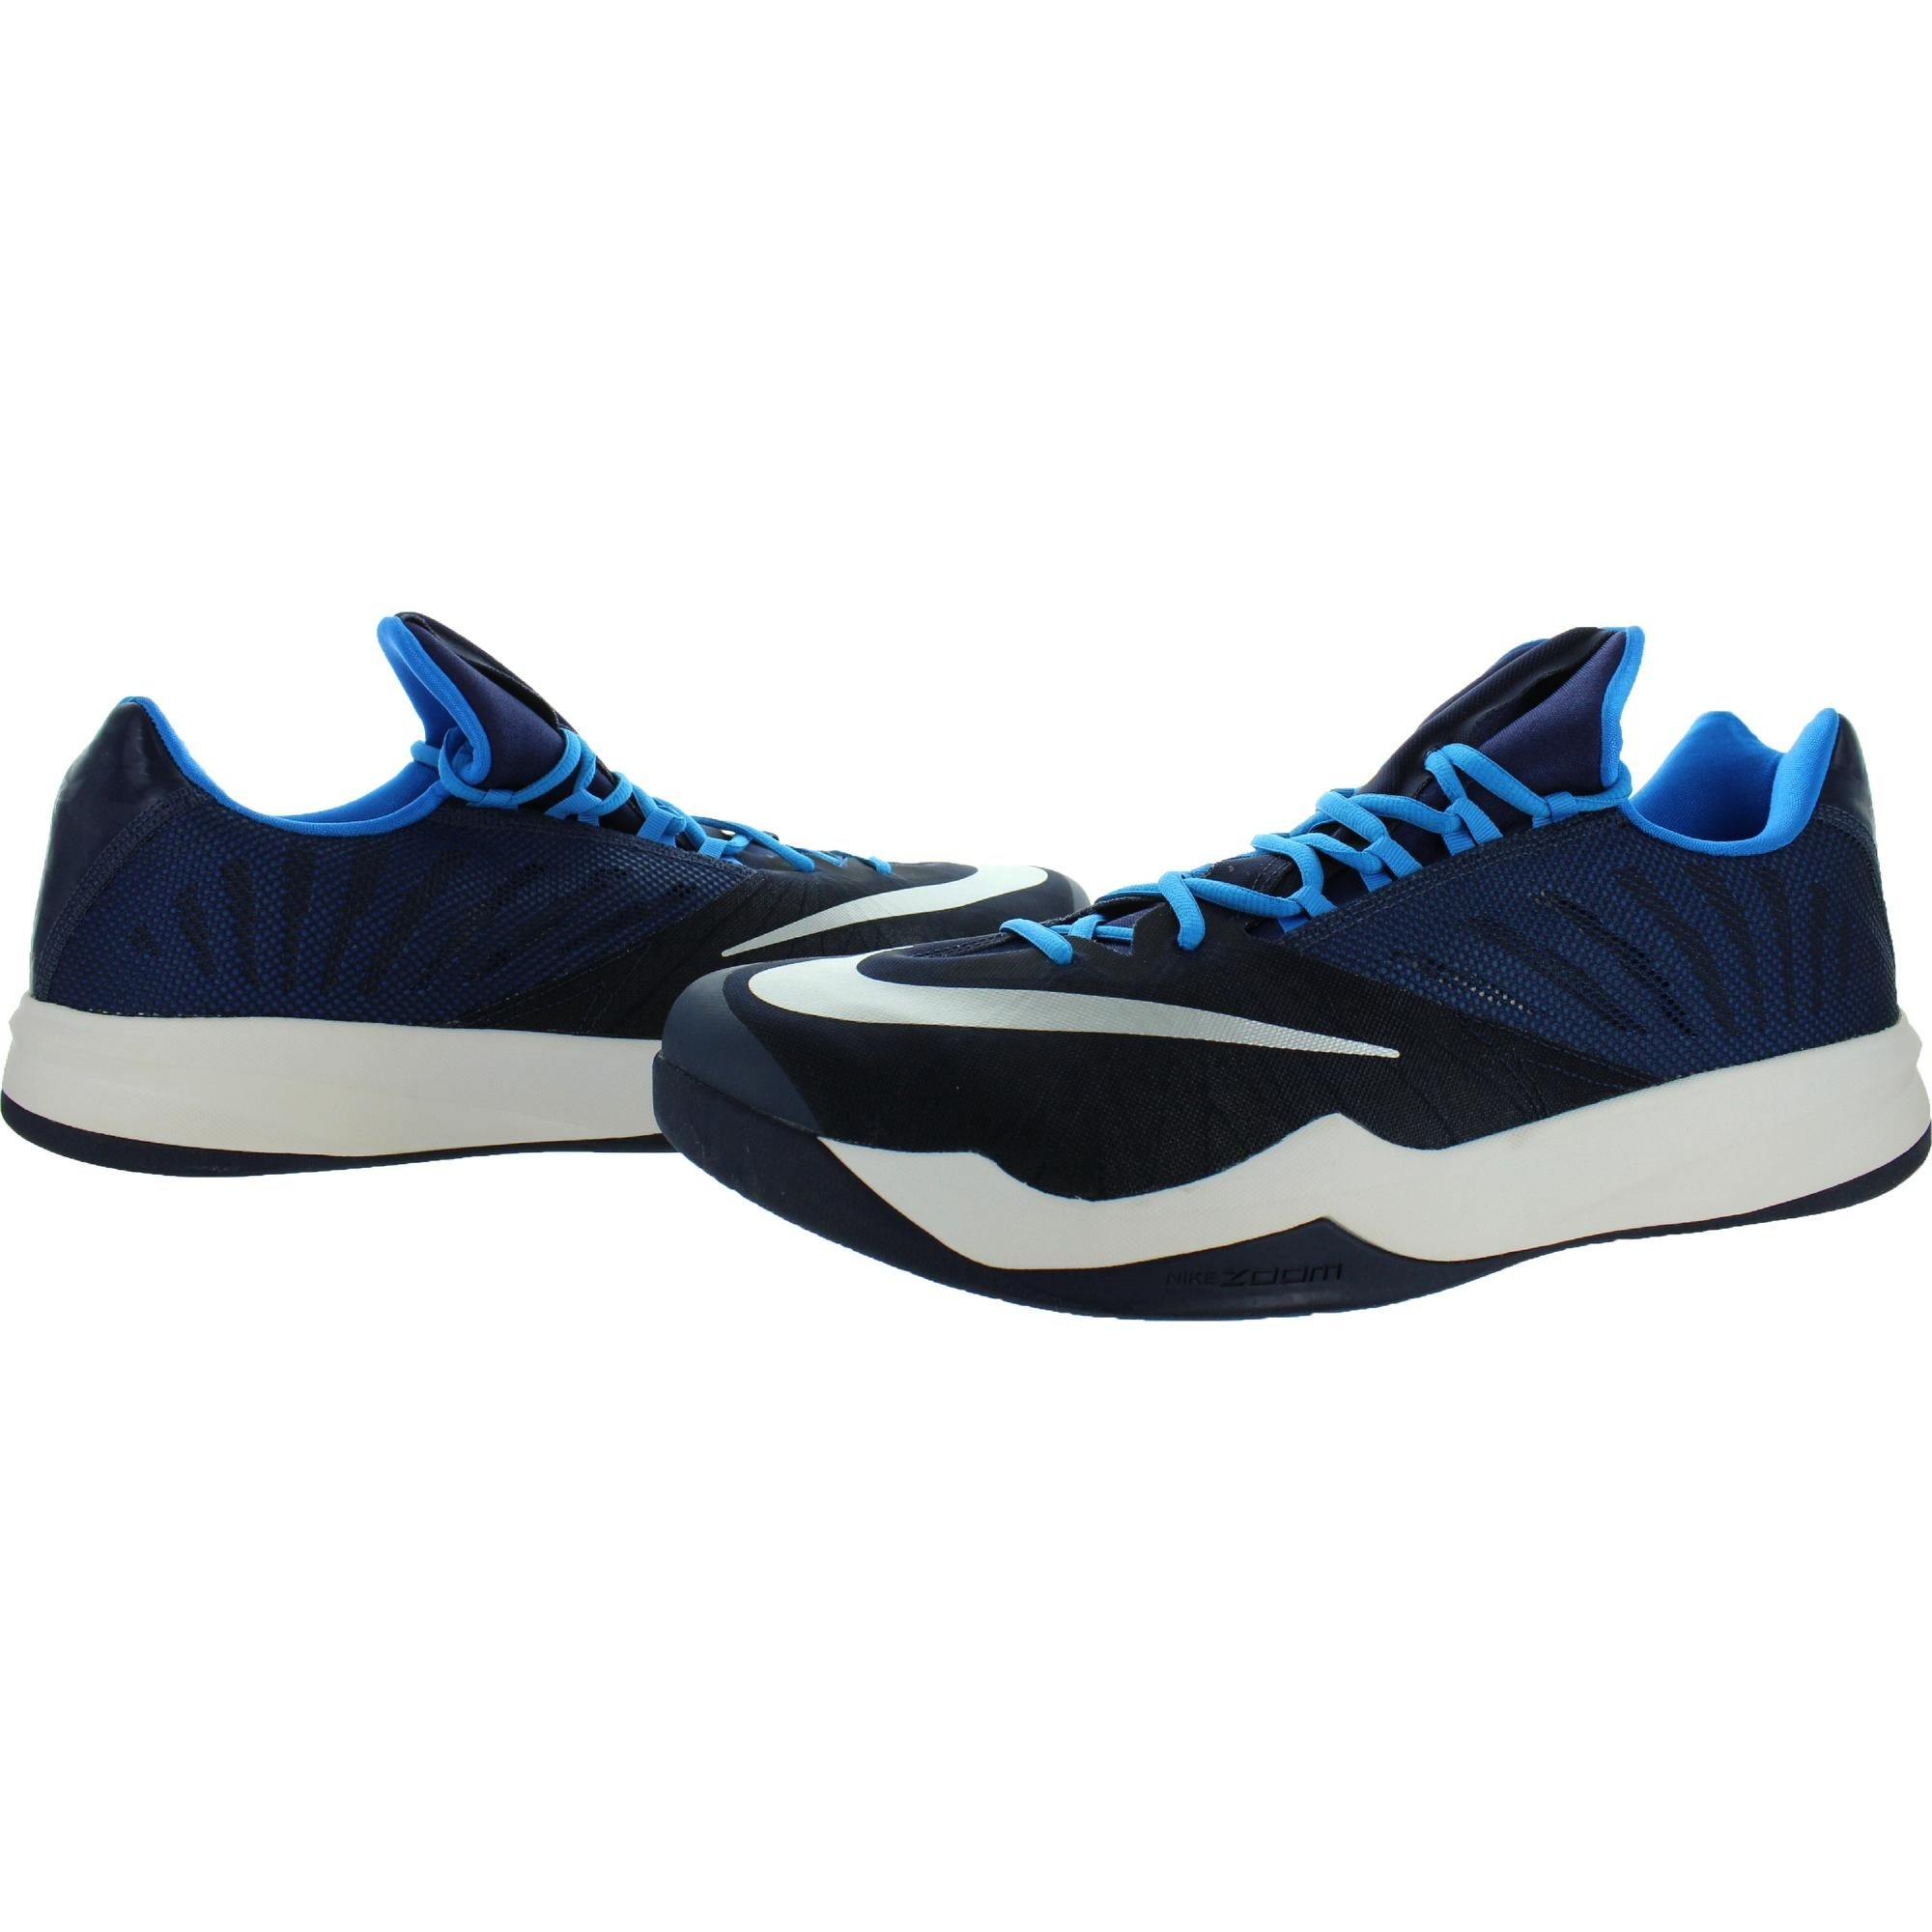 inestable Sociología Diverso  Nike Mens Zoom Run The One TB Running Shoes Workout Lifestyle - Overstock -  31857310